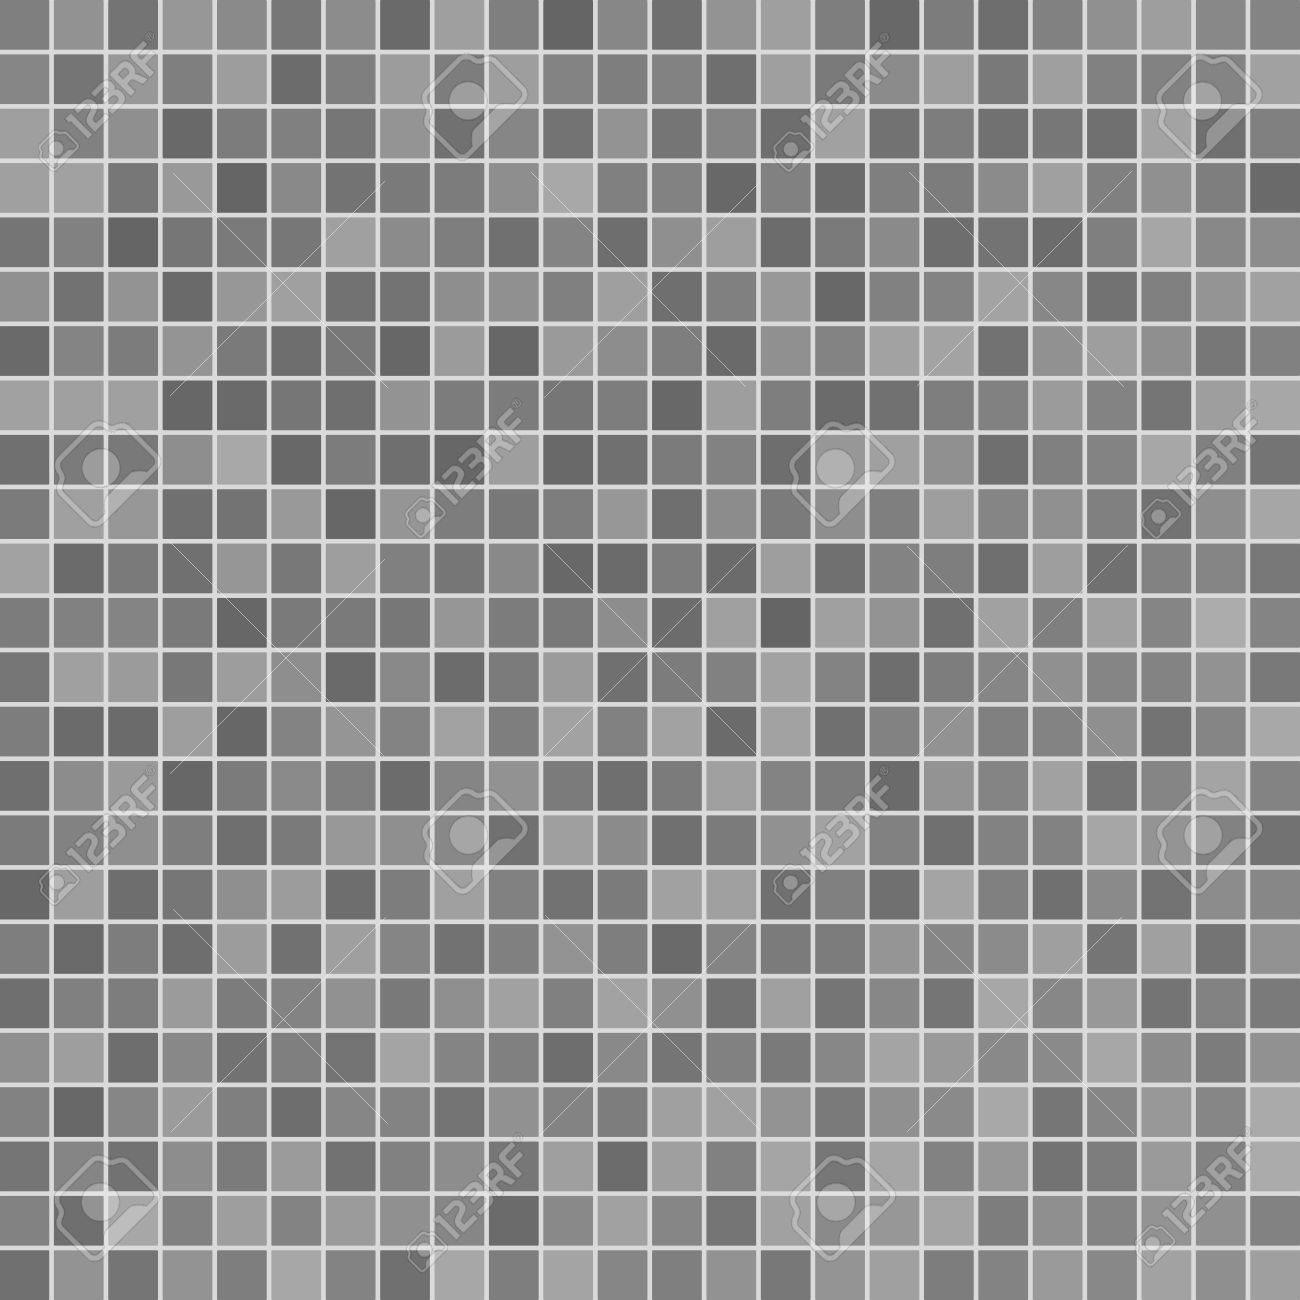 Gray ceramic tile mosaic in swimming pool royalty free cliparts gray ceramic tile mosaic in swimming pool stock vector 33748973 dailygadgetfo Image collections